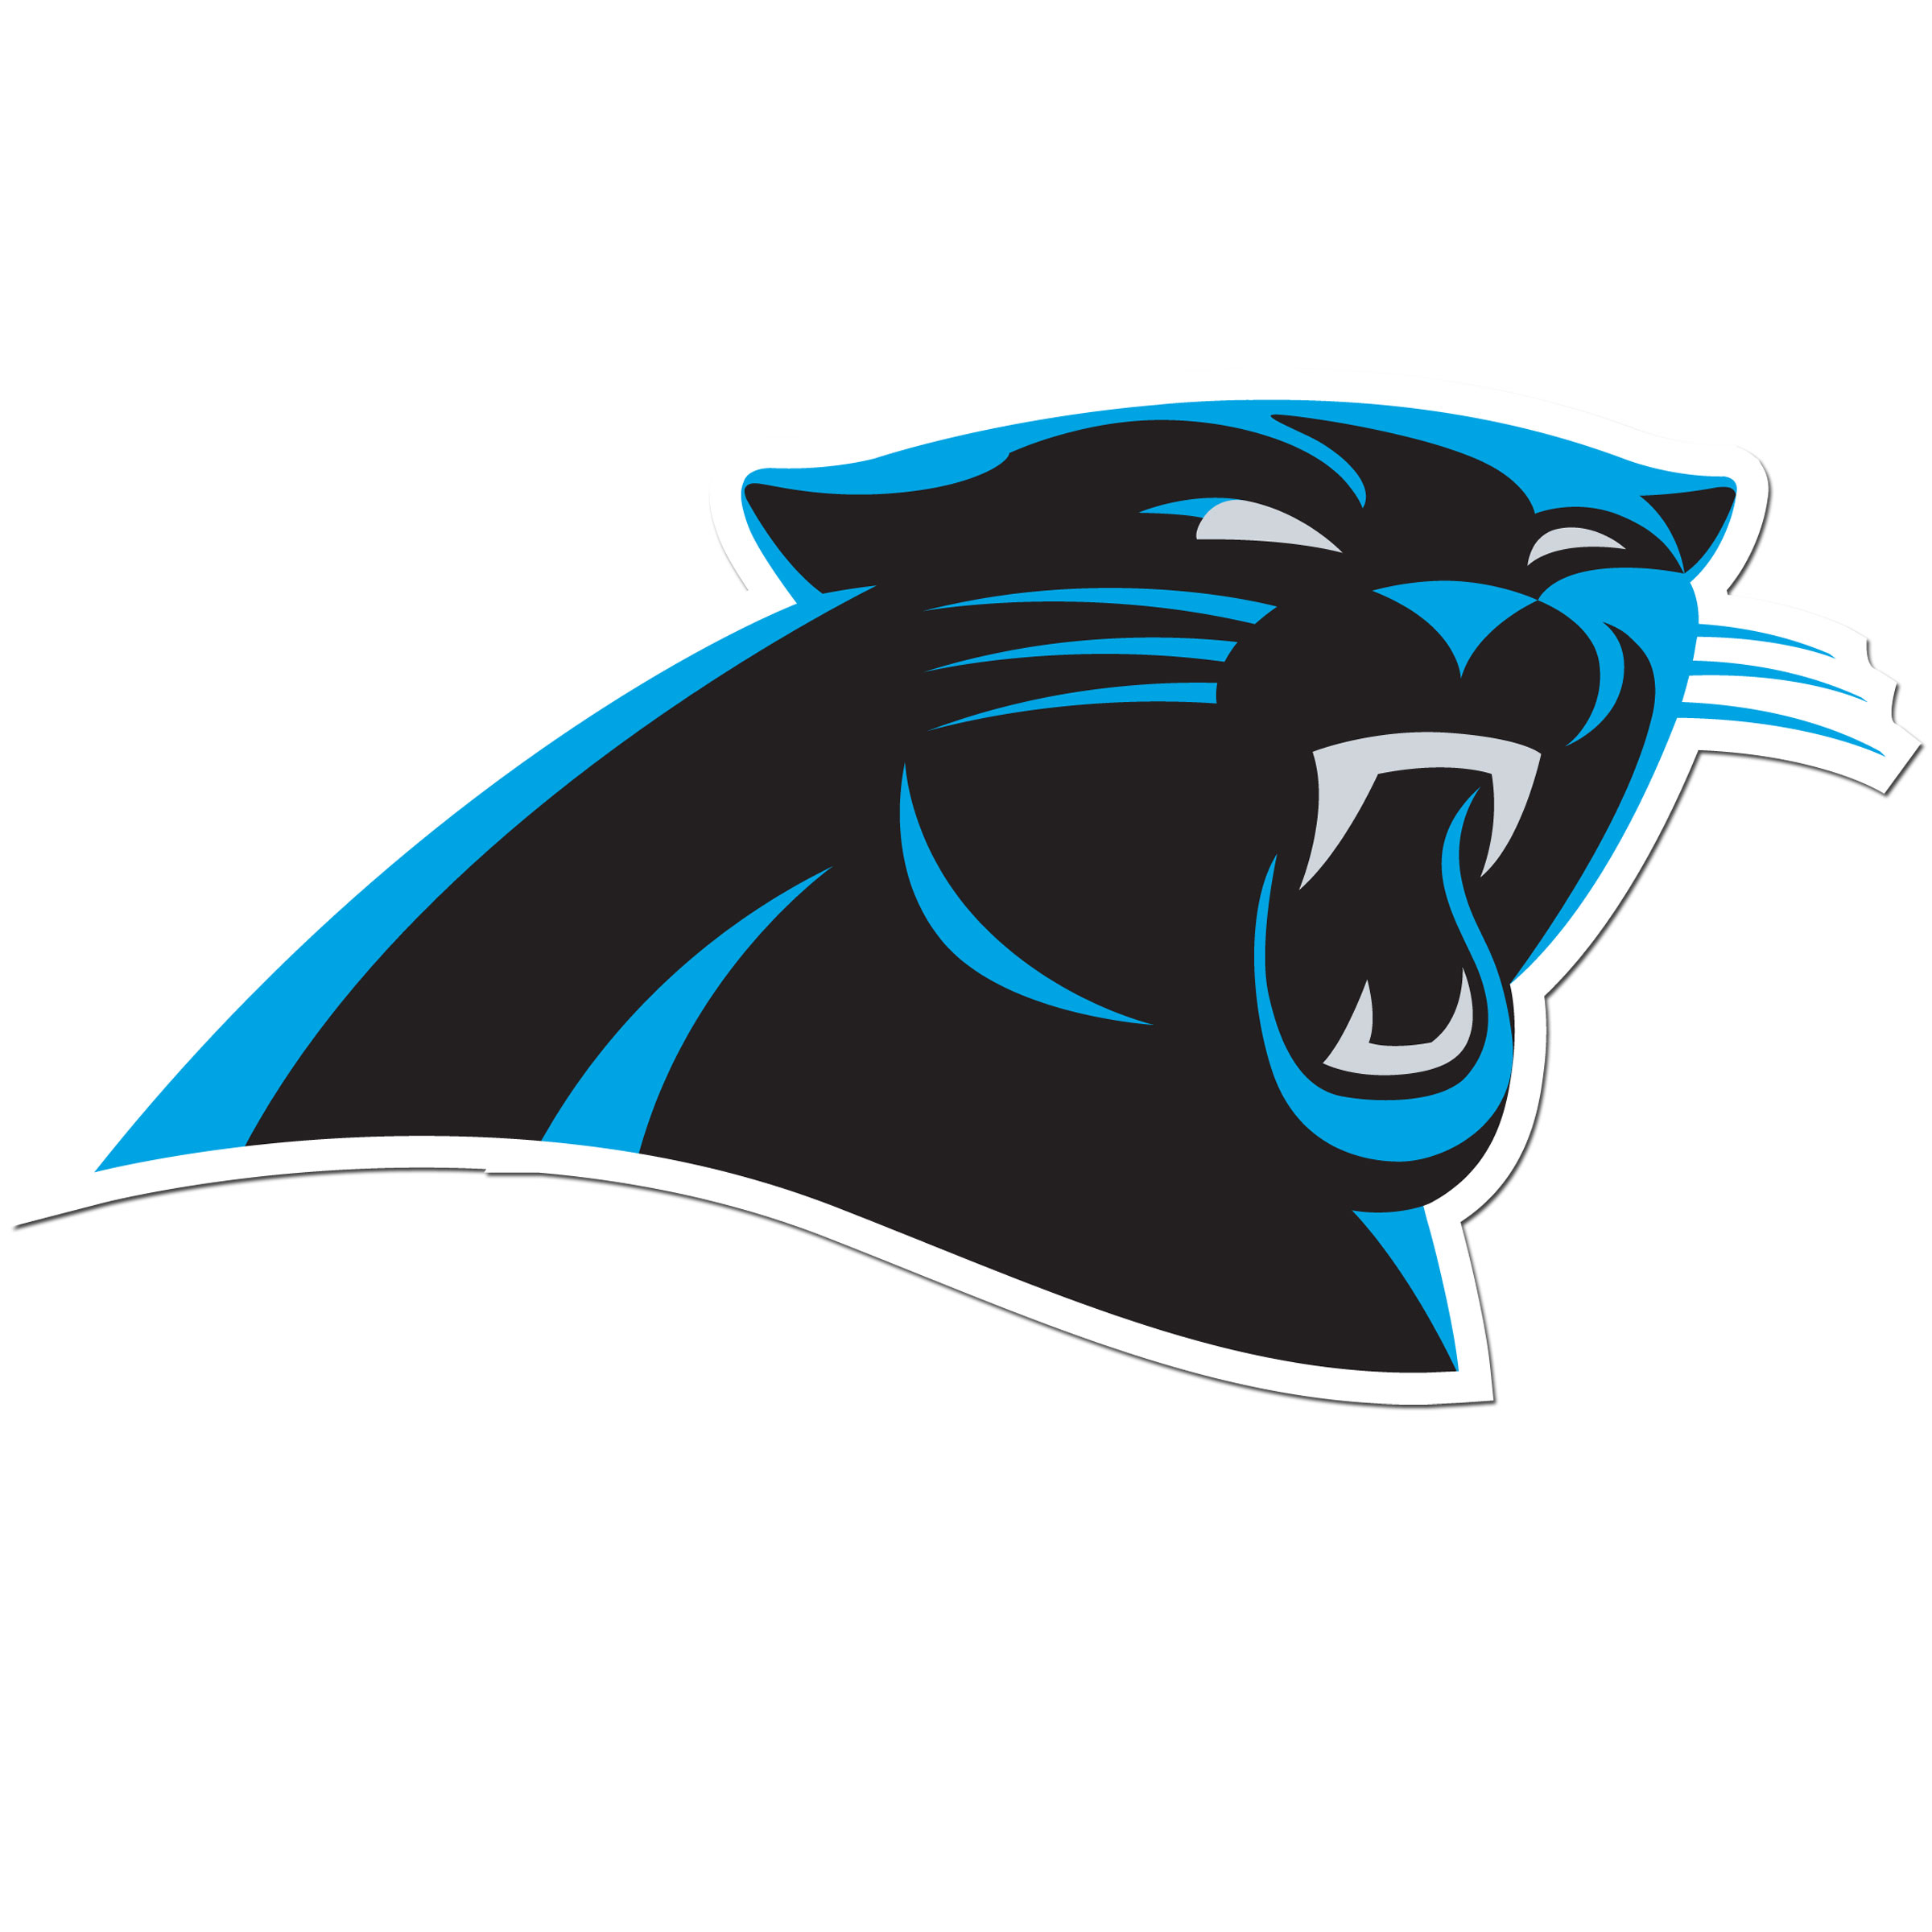 Carolina Panthers 8 inch Auto Decal - This bold, 8 inch Carolina Panthers is a great way to show off your team pride! The low tack vinyl decal is easily positioned and adjusted to make sure you get that logo in just the right spot on your vehicle. Designed to be used on the outside of the window.